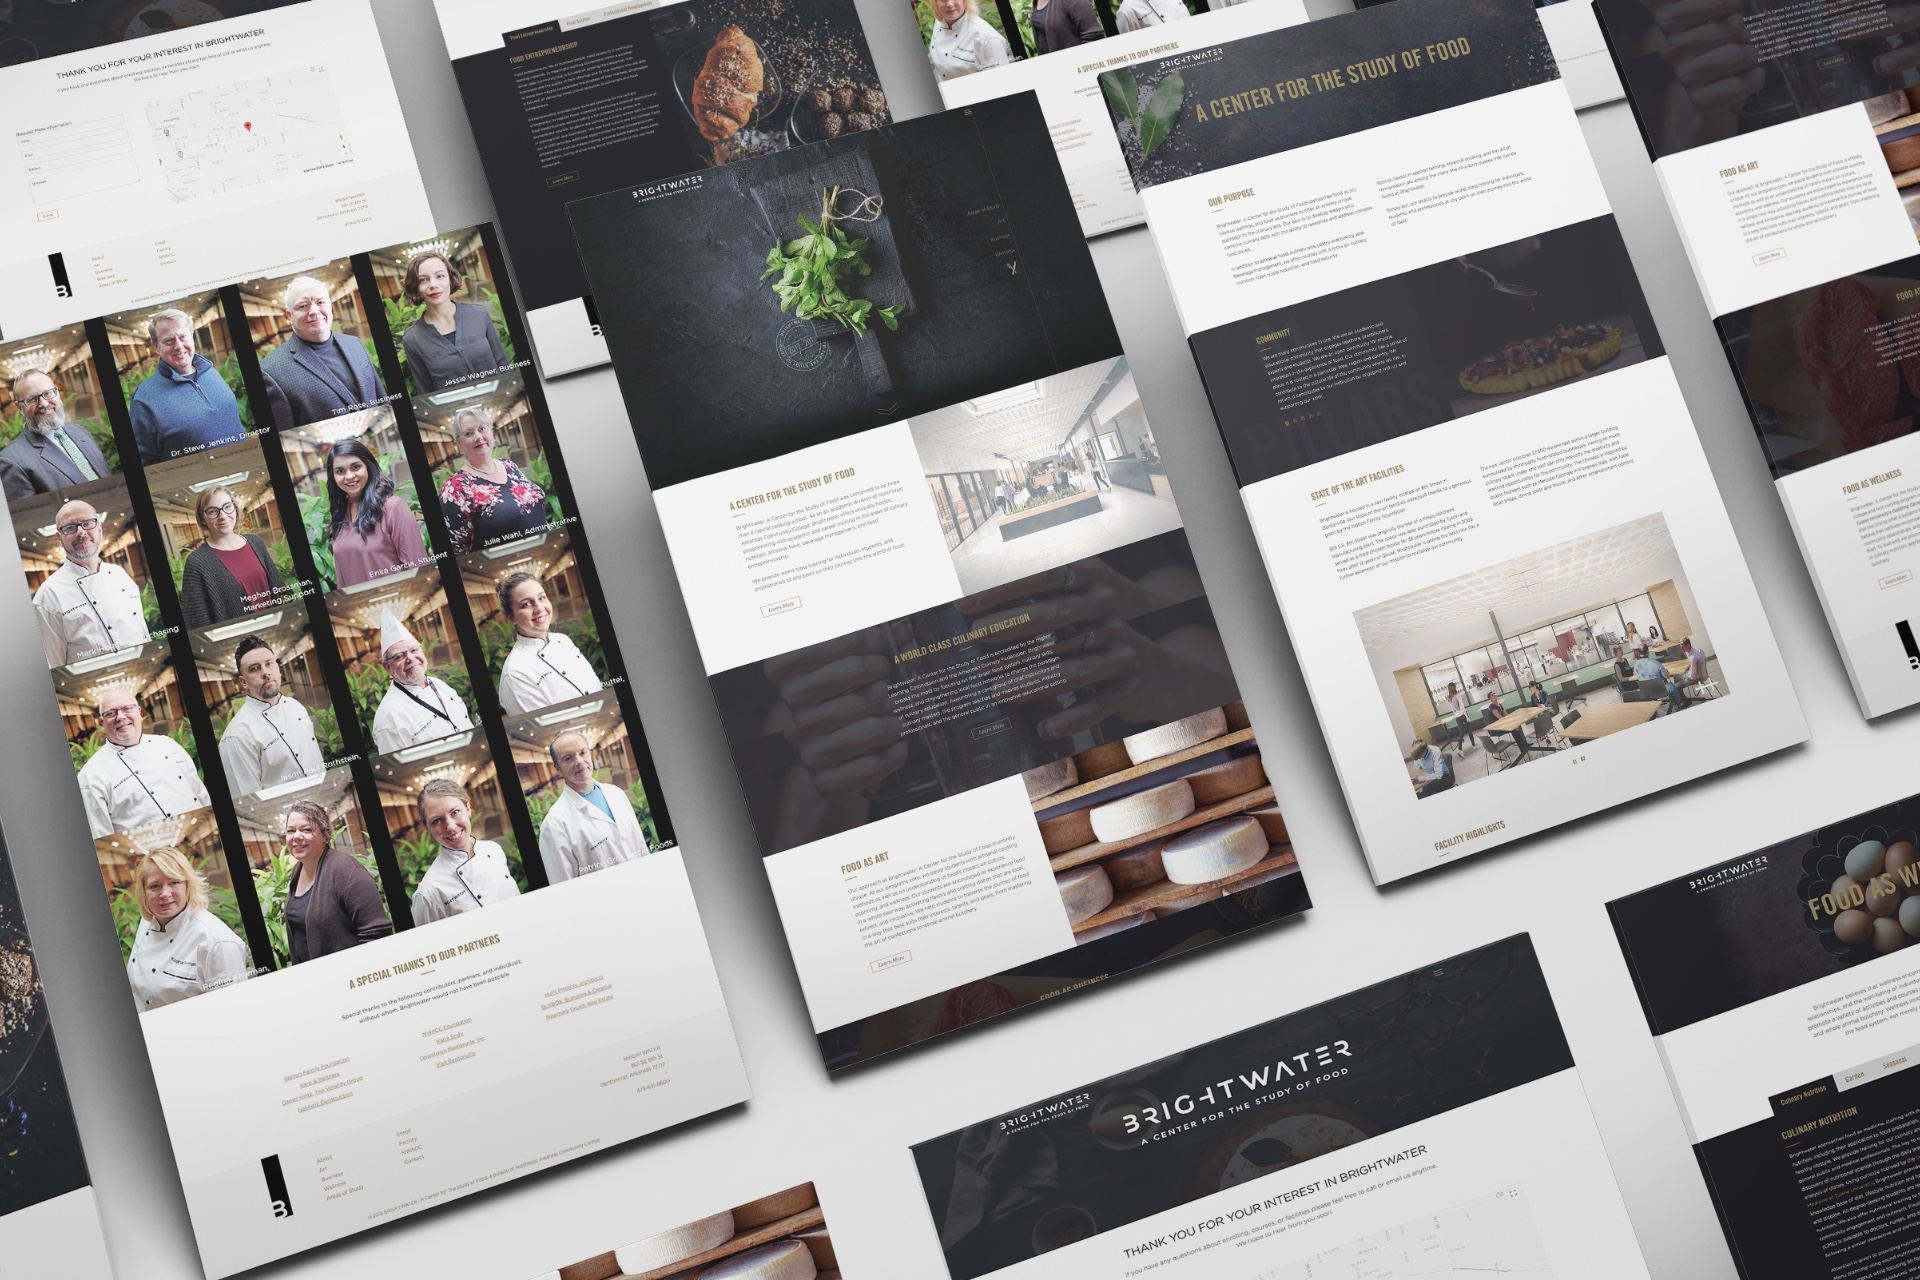 Full Website Design, Creative Direction, And Sleek User Experience For Culinary School Website